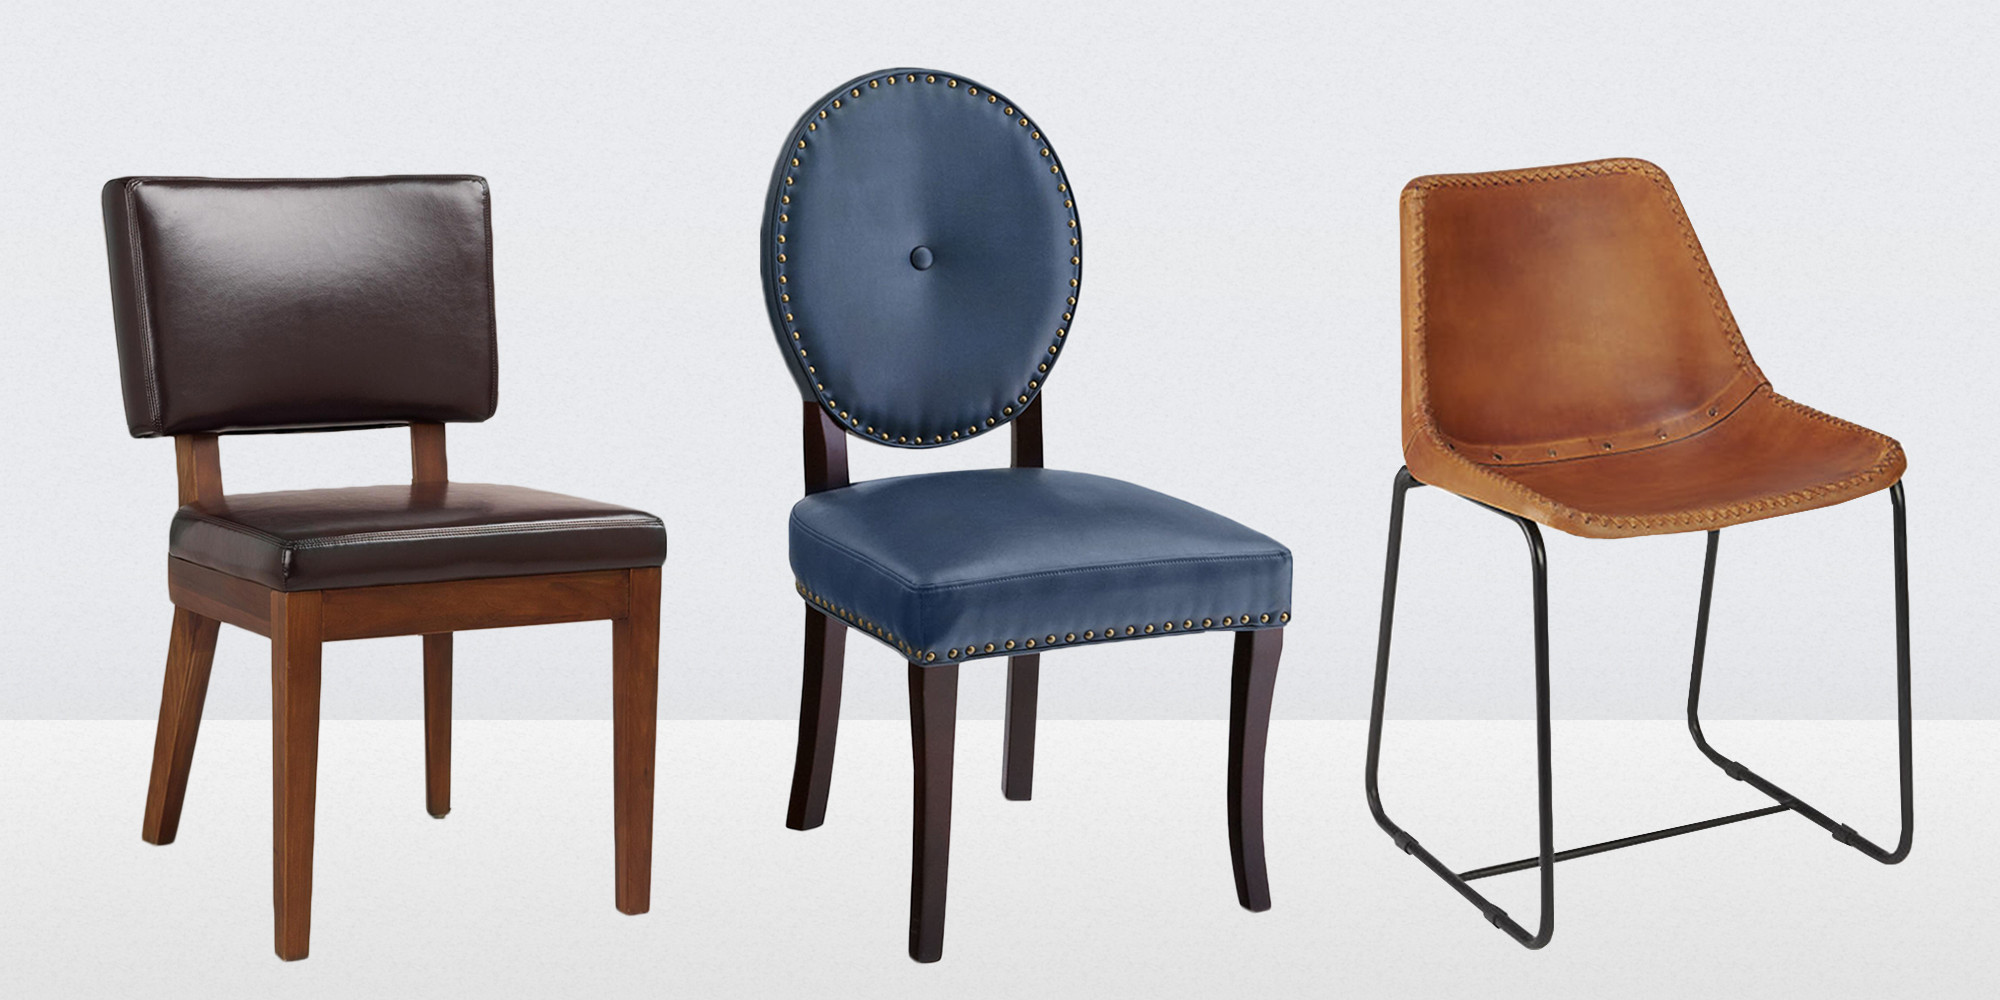 Best ideas about Leather Dining Chair . Save or Pin 13 Best Leather Dining Room Chairs in 2018 Leather Side Now.